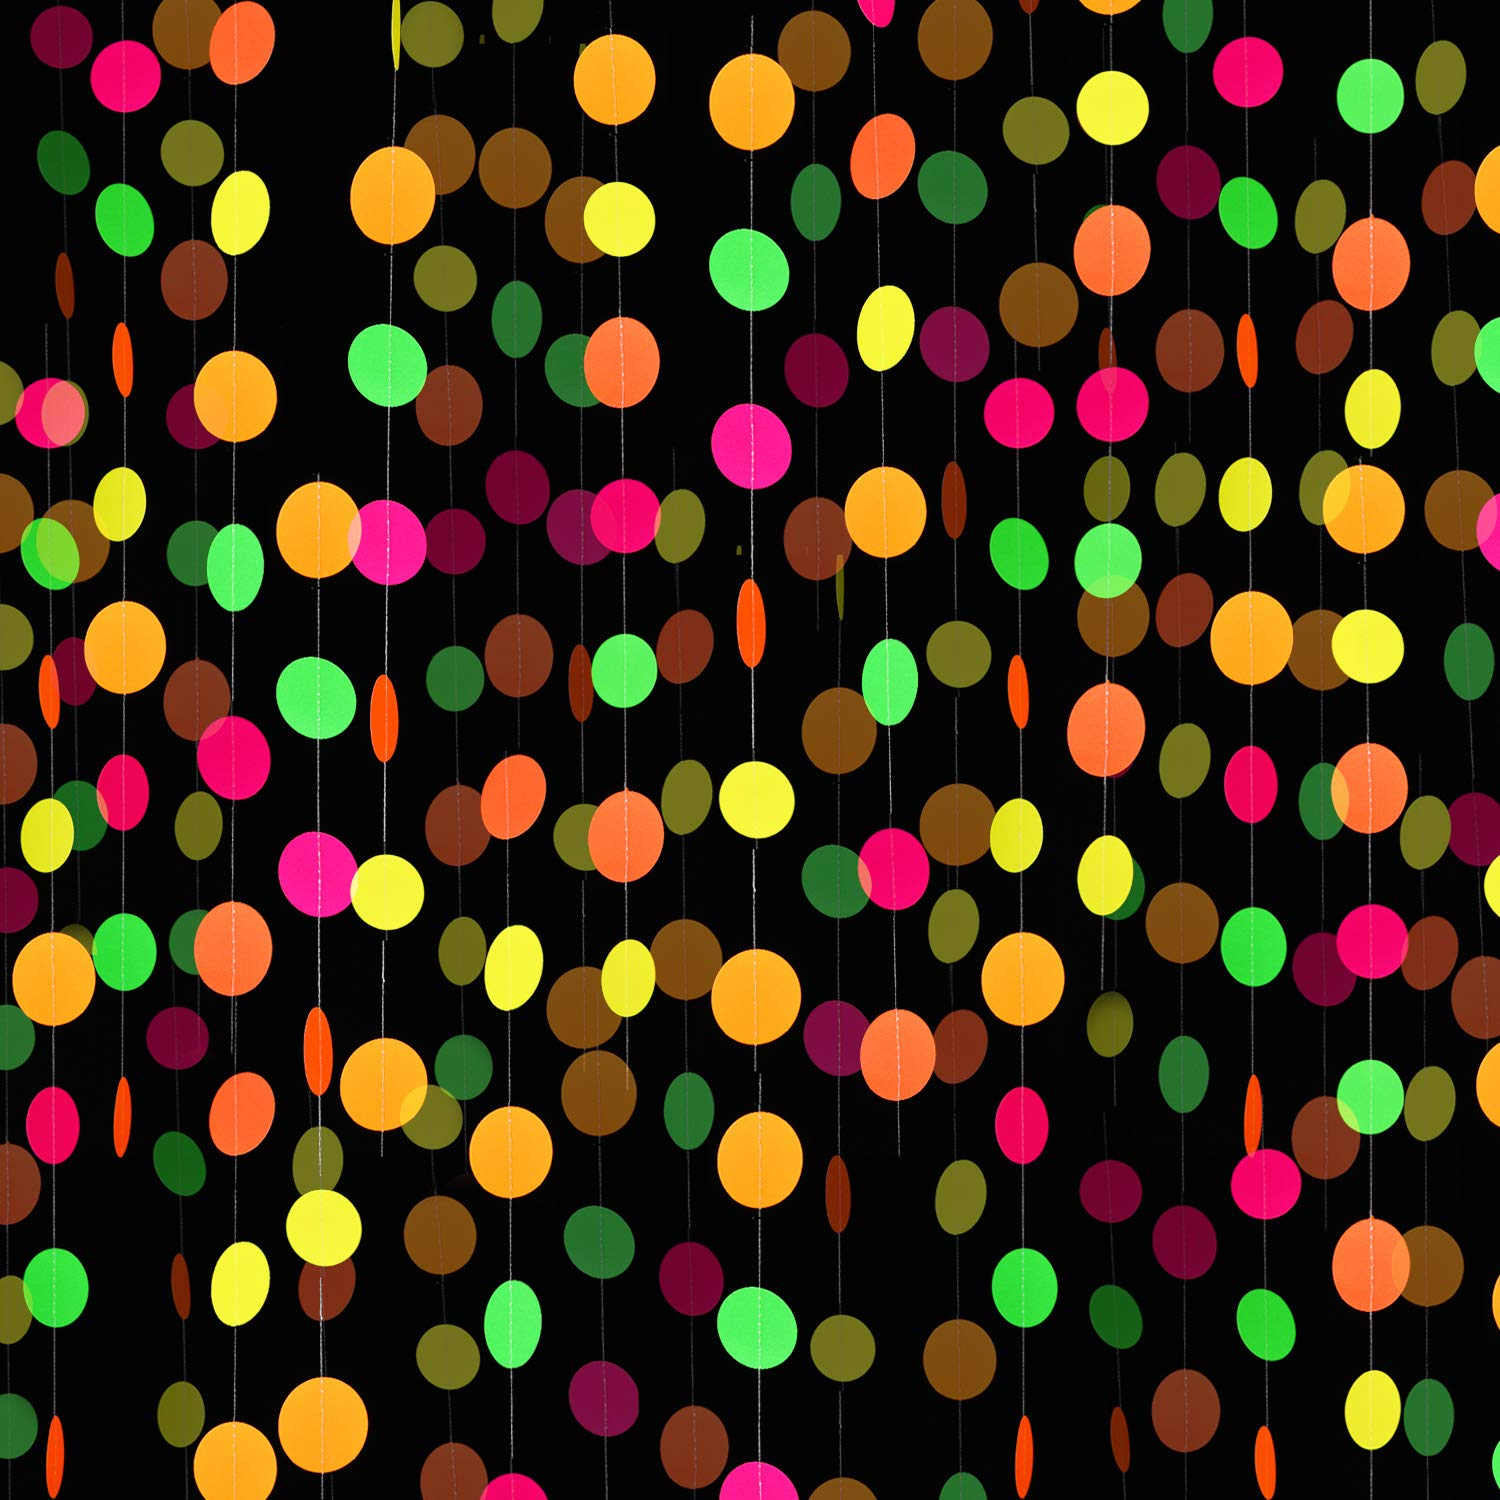 8 Pieces Neon Paper Garlands Circle Dots Banner Neon Circle Hanging Decorations for Birthday Wedding Black Light Party Supplies Reactive UV Glow Party by BBTO